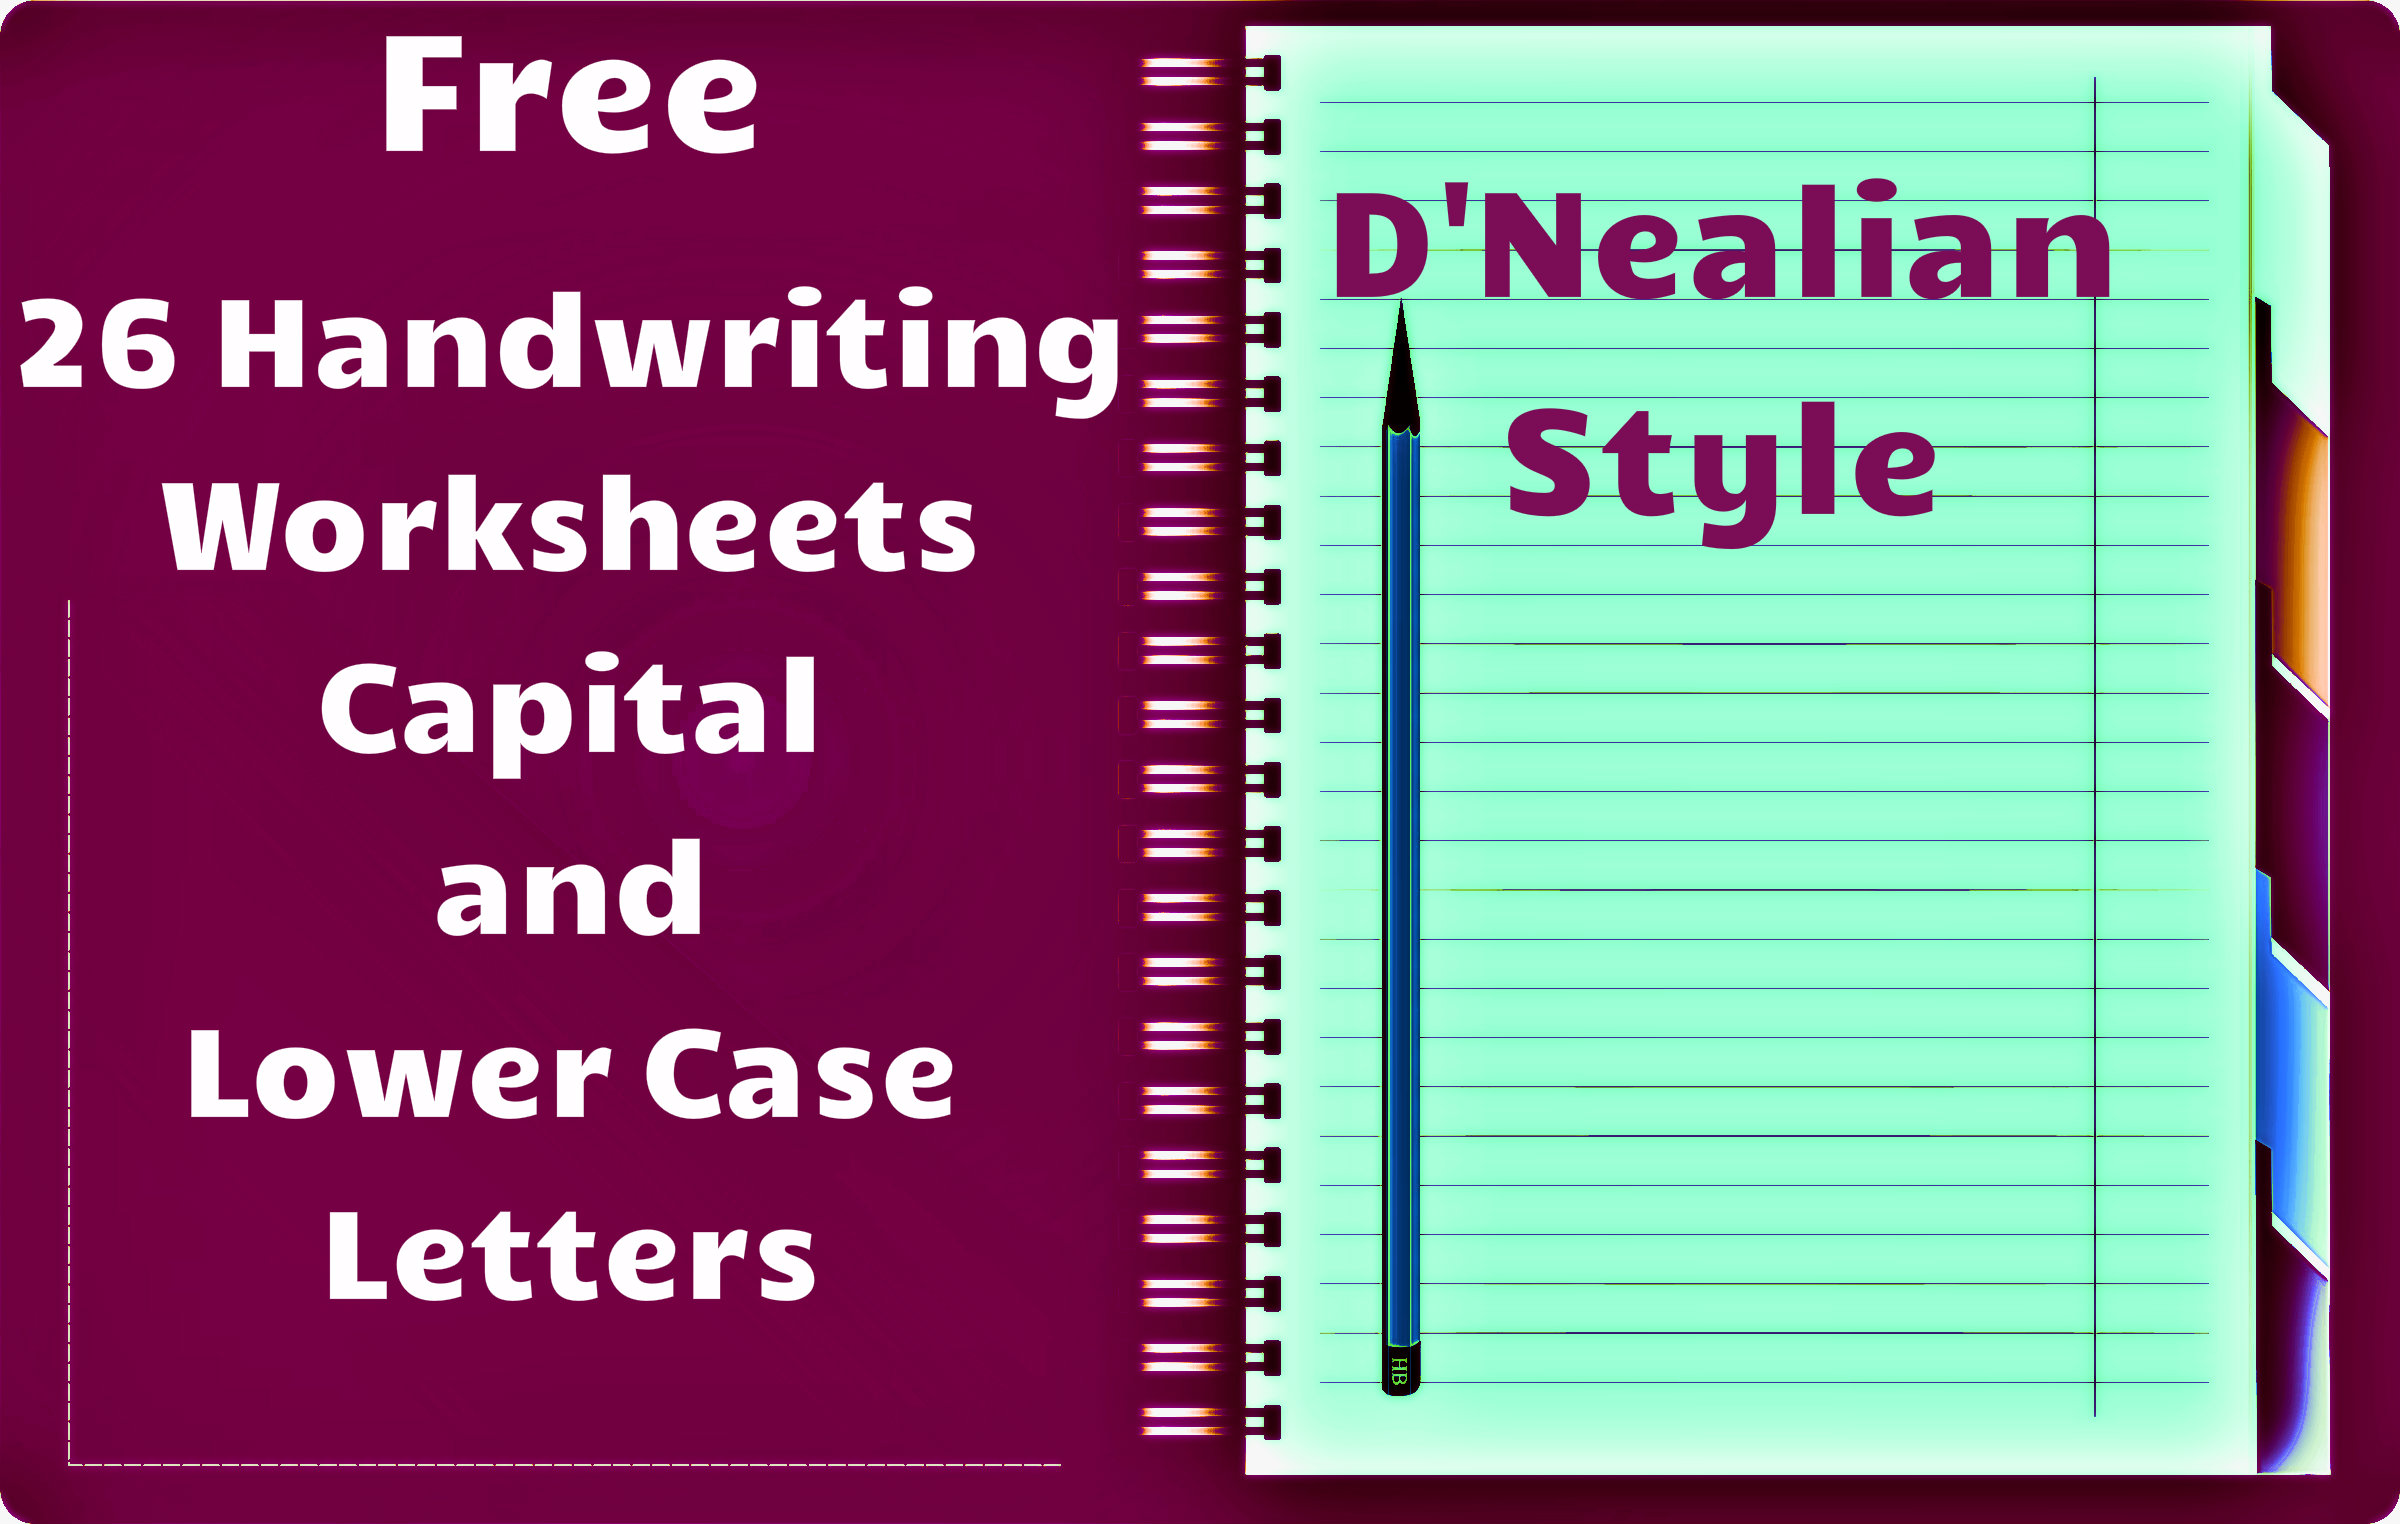 Free Handwriting Worksheets – Free Handwriting Worksheet Maker